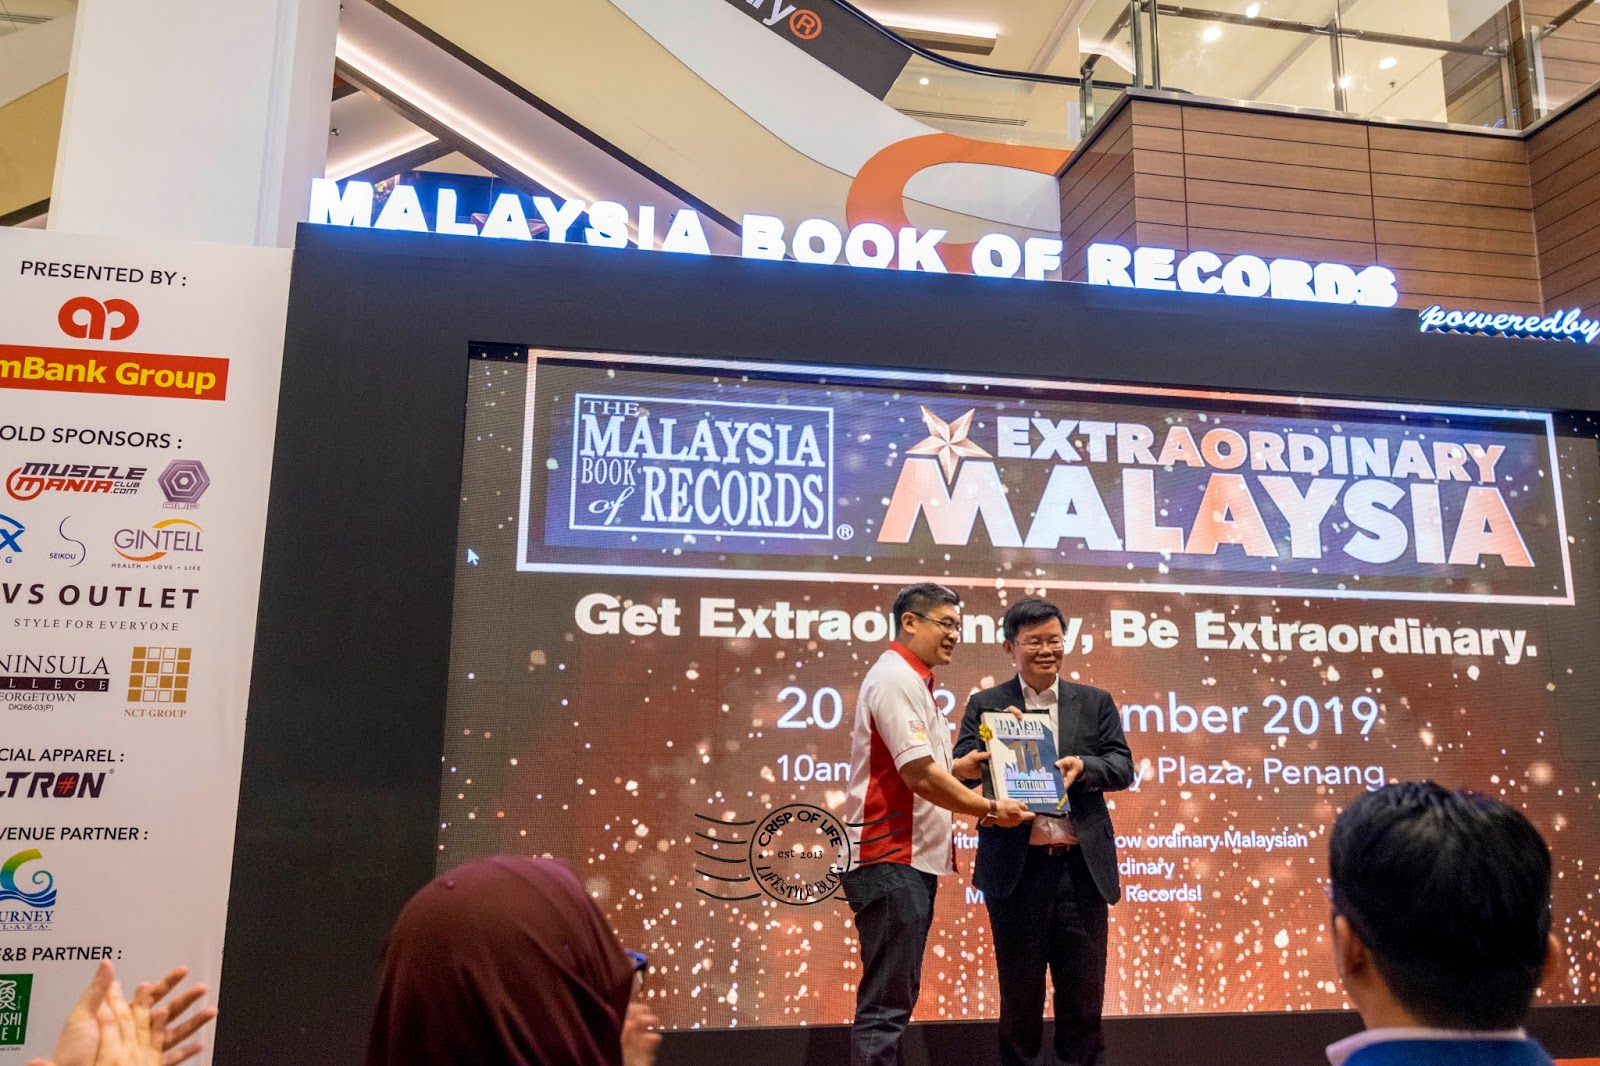 Records Breaking Attempts at MBR Live! 2019 by Malaysia Book of Records @ Gurney Plaza, Penang